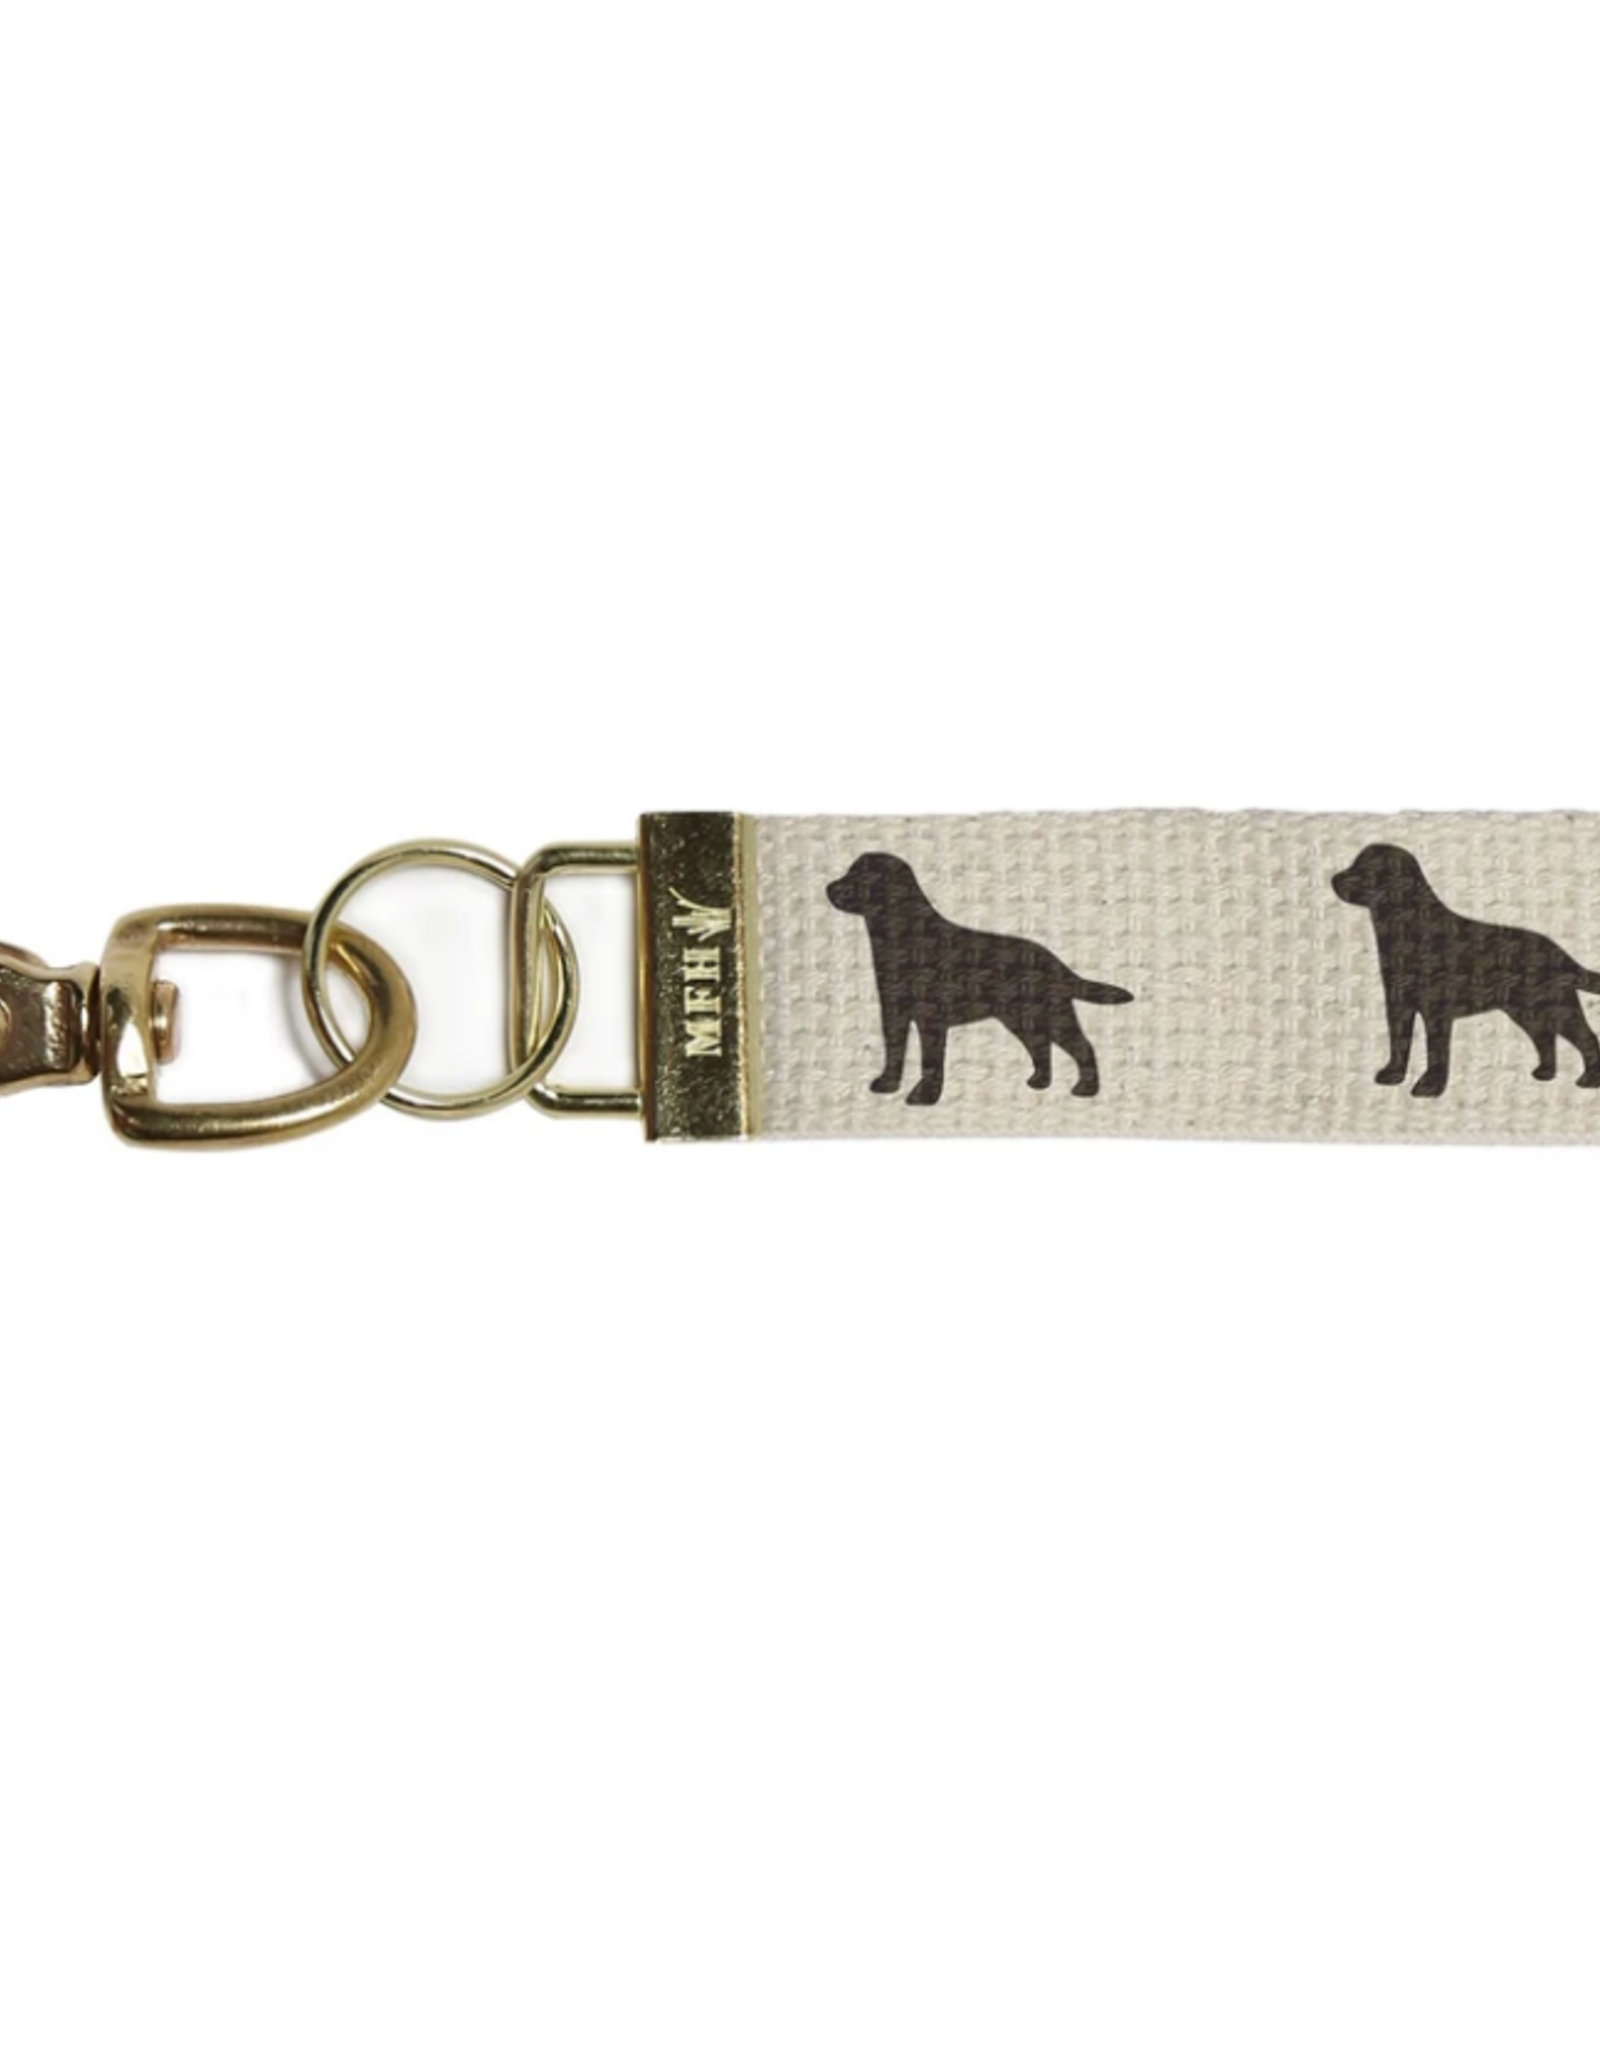 Marshes, Fields & Hills - Key Chain Dog - Black